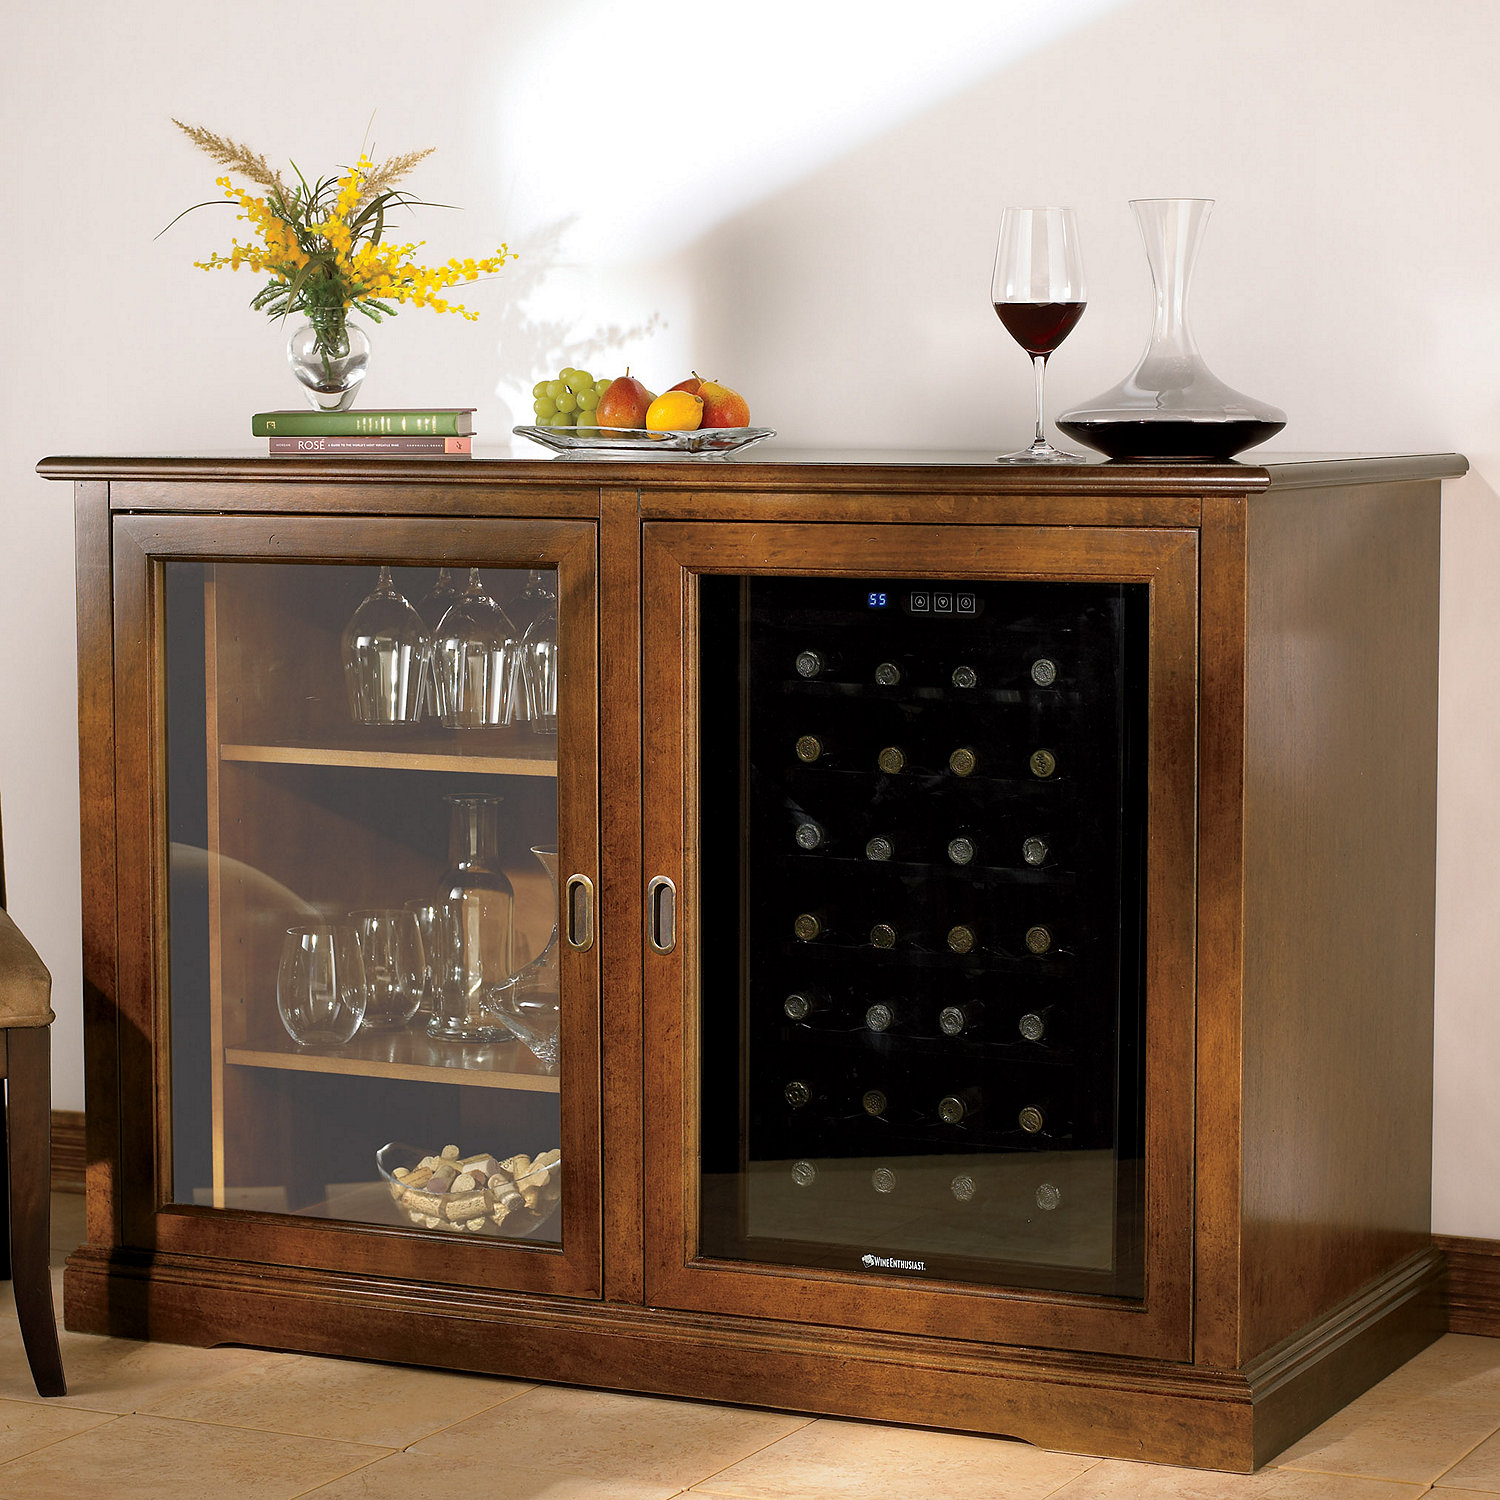 Siena Mezzo Wine Credenza (Walnut) with Wine Refrigerator - Wine ...